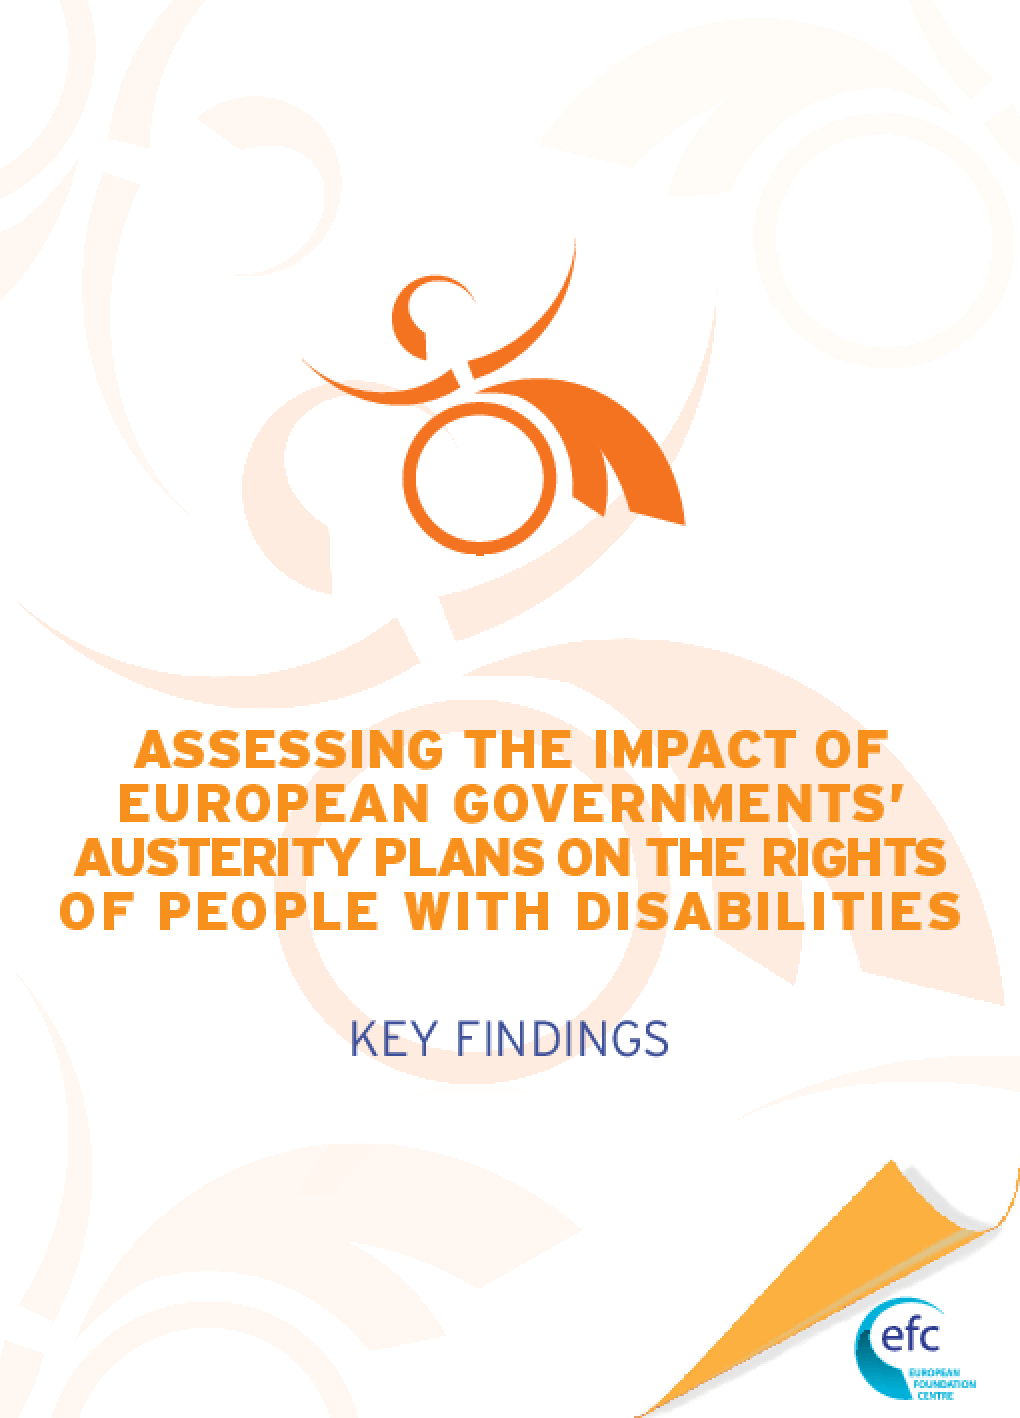 Assessing the Impact of European Governments' Austerity Plans on the Rights of People with Disabilities: Key Findings